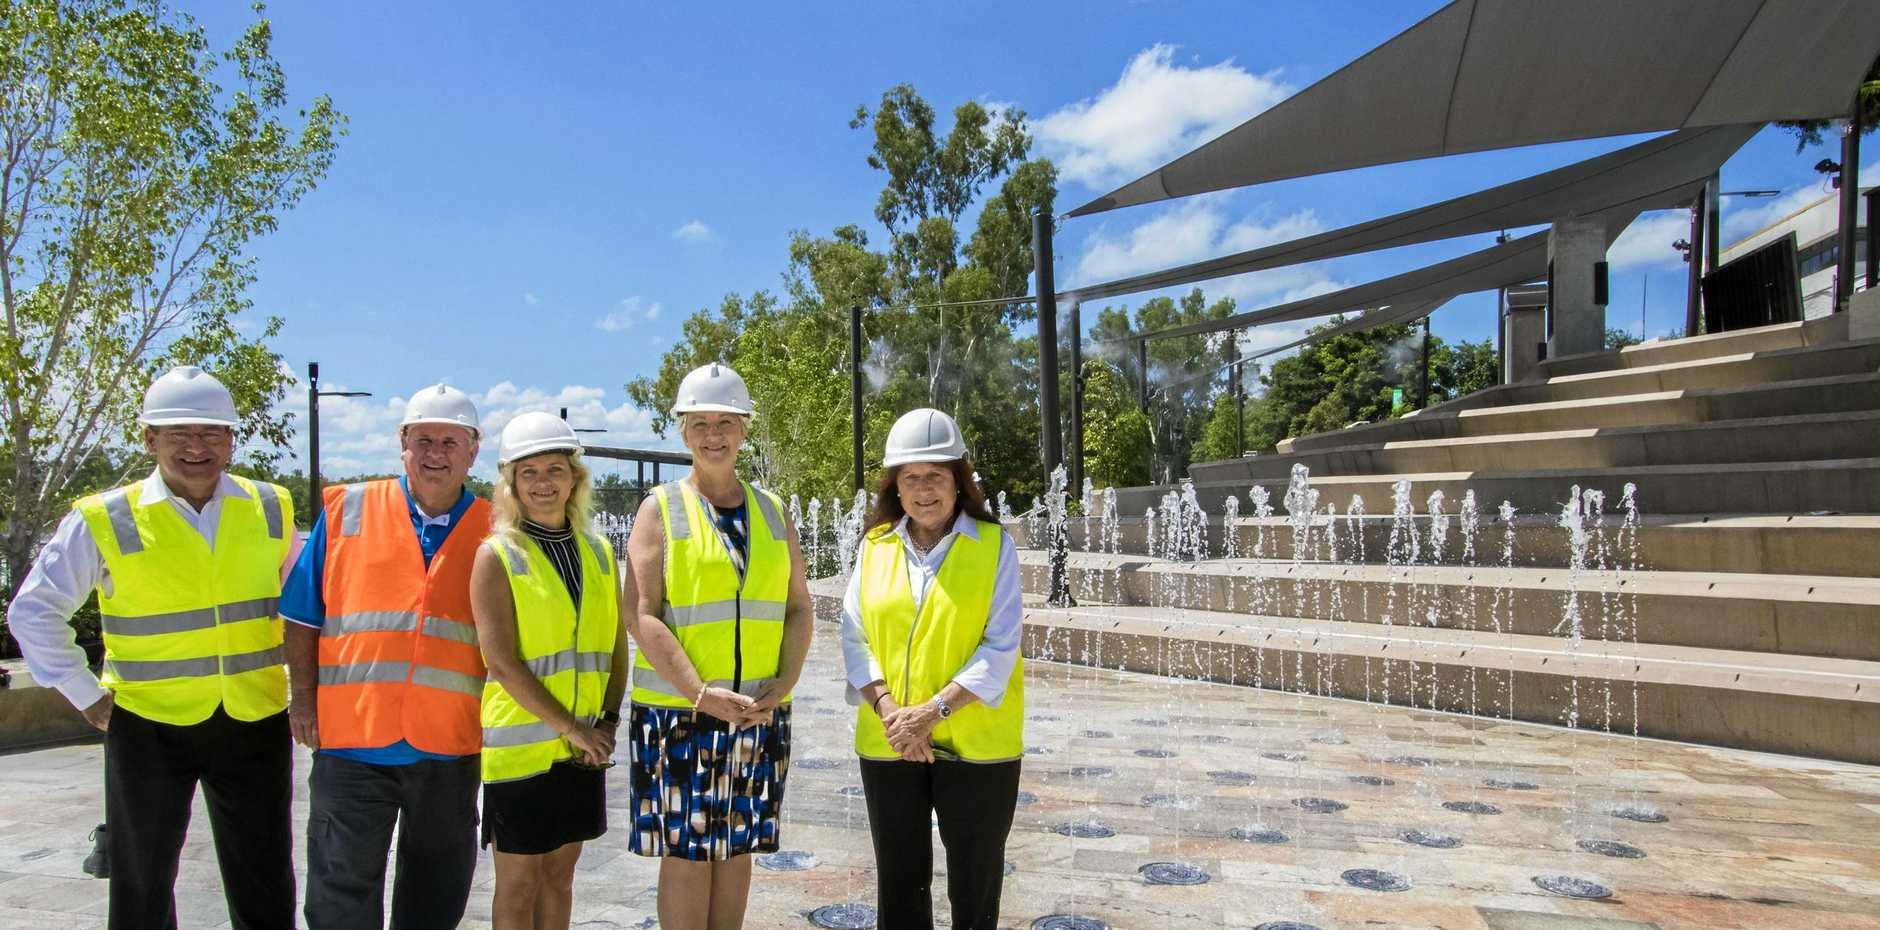 Cr Drew Wickerson, Cr Neil Fisher, Deputy Mayor Rutherford, Mayor Margaret Strelow and Cr Ellen Smith inspecting the new water features on Riverside.